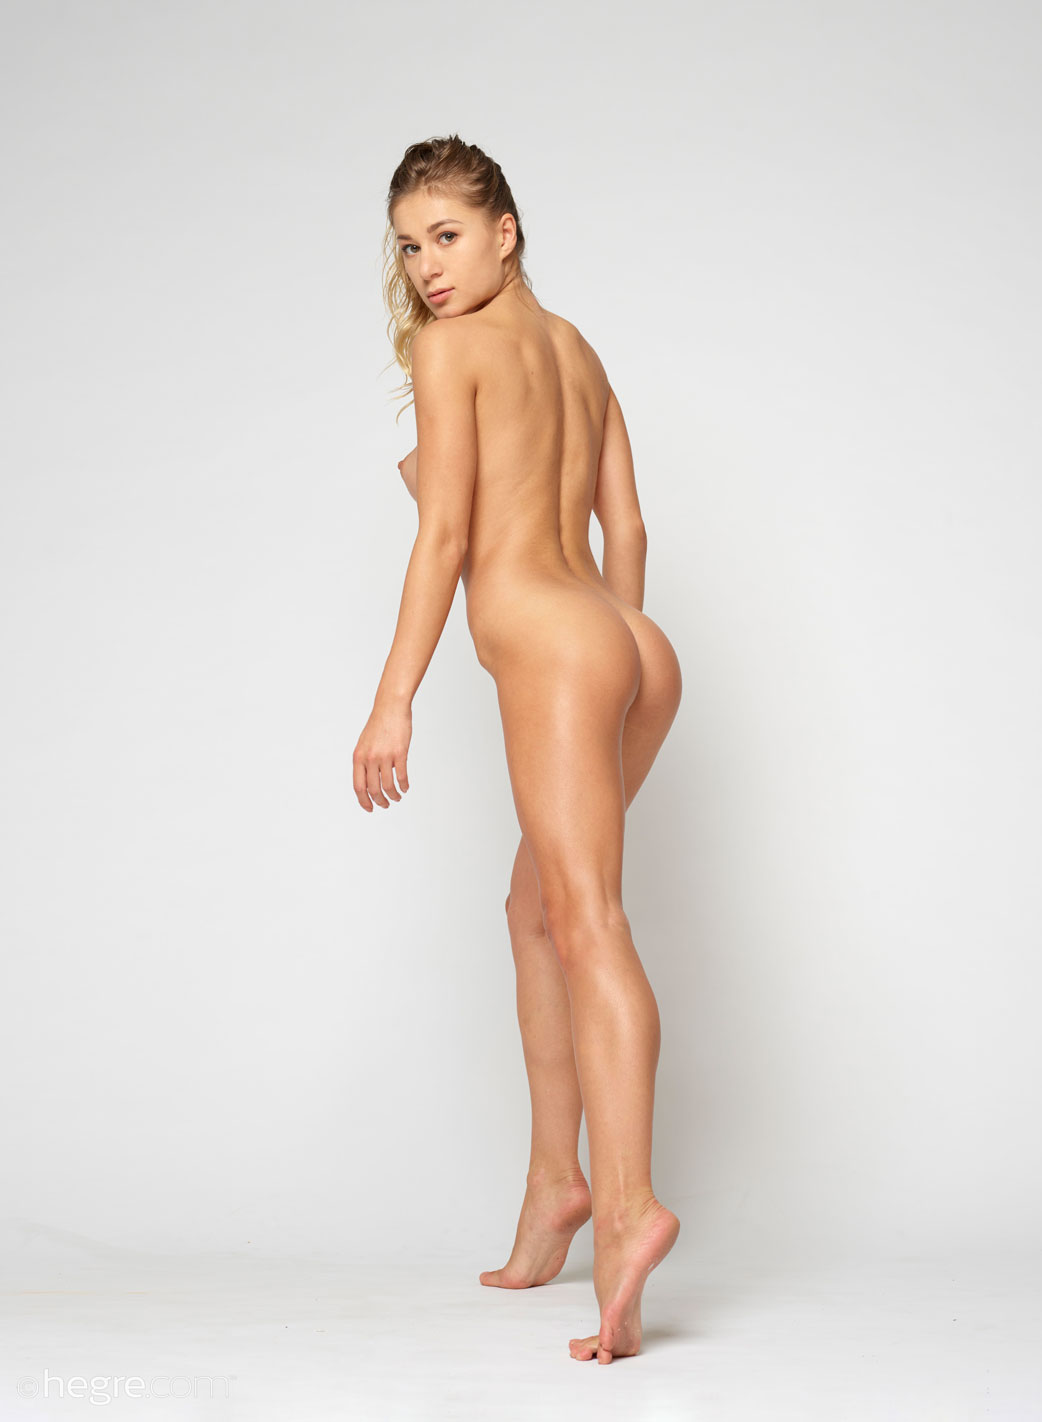 something also idea fake naked sexy young celebrity pics for that interfere similar